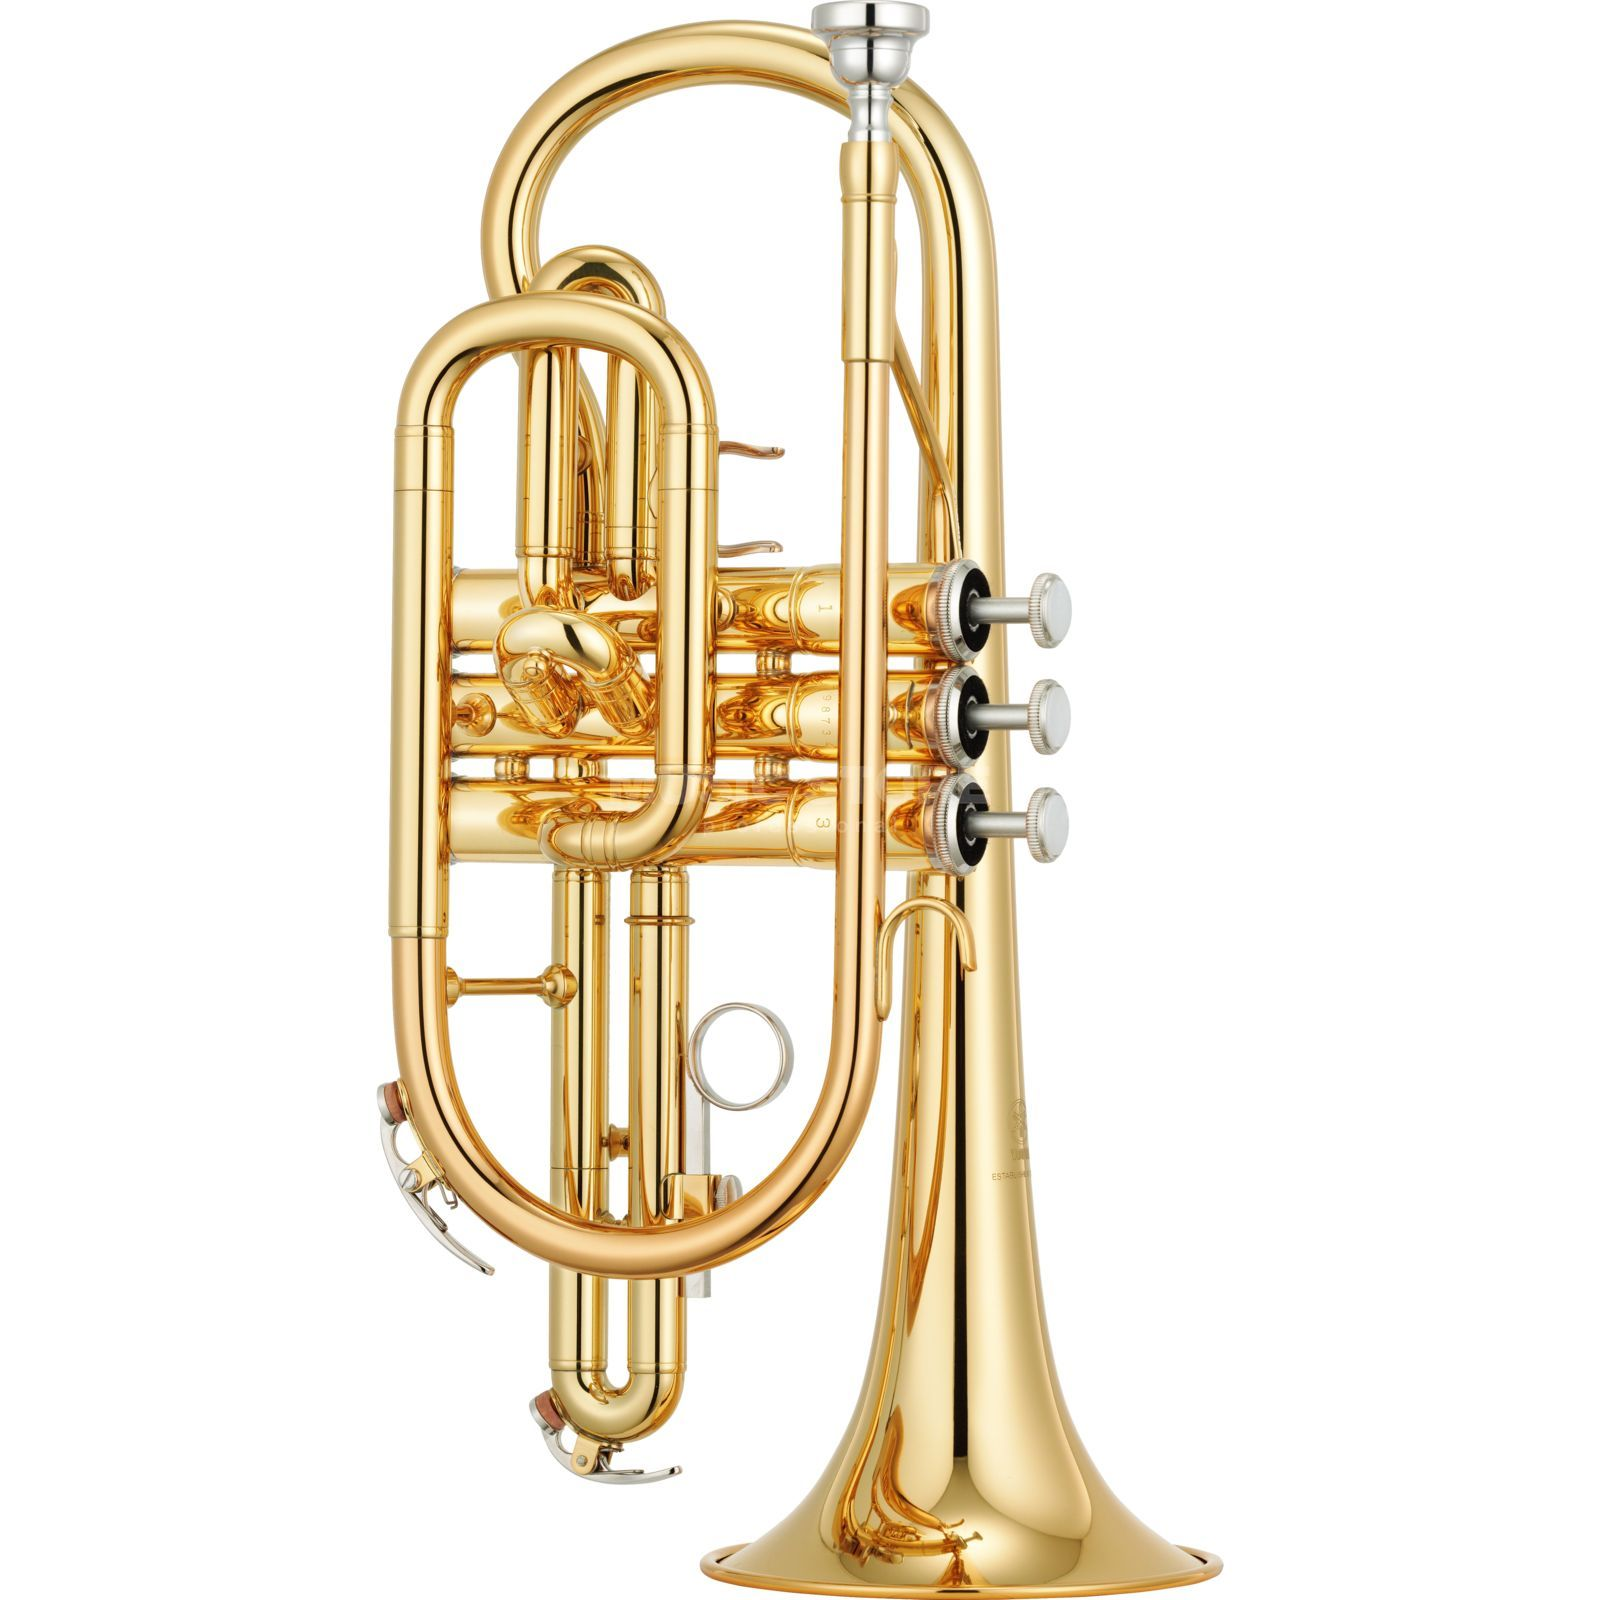 Yamaha YCR-2330 III Bb-Cornet Yellow Brass Изображение товара